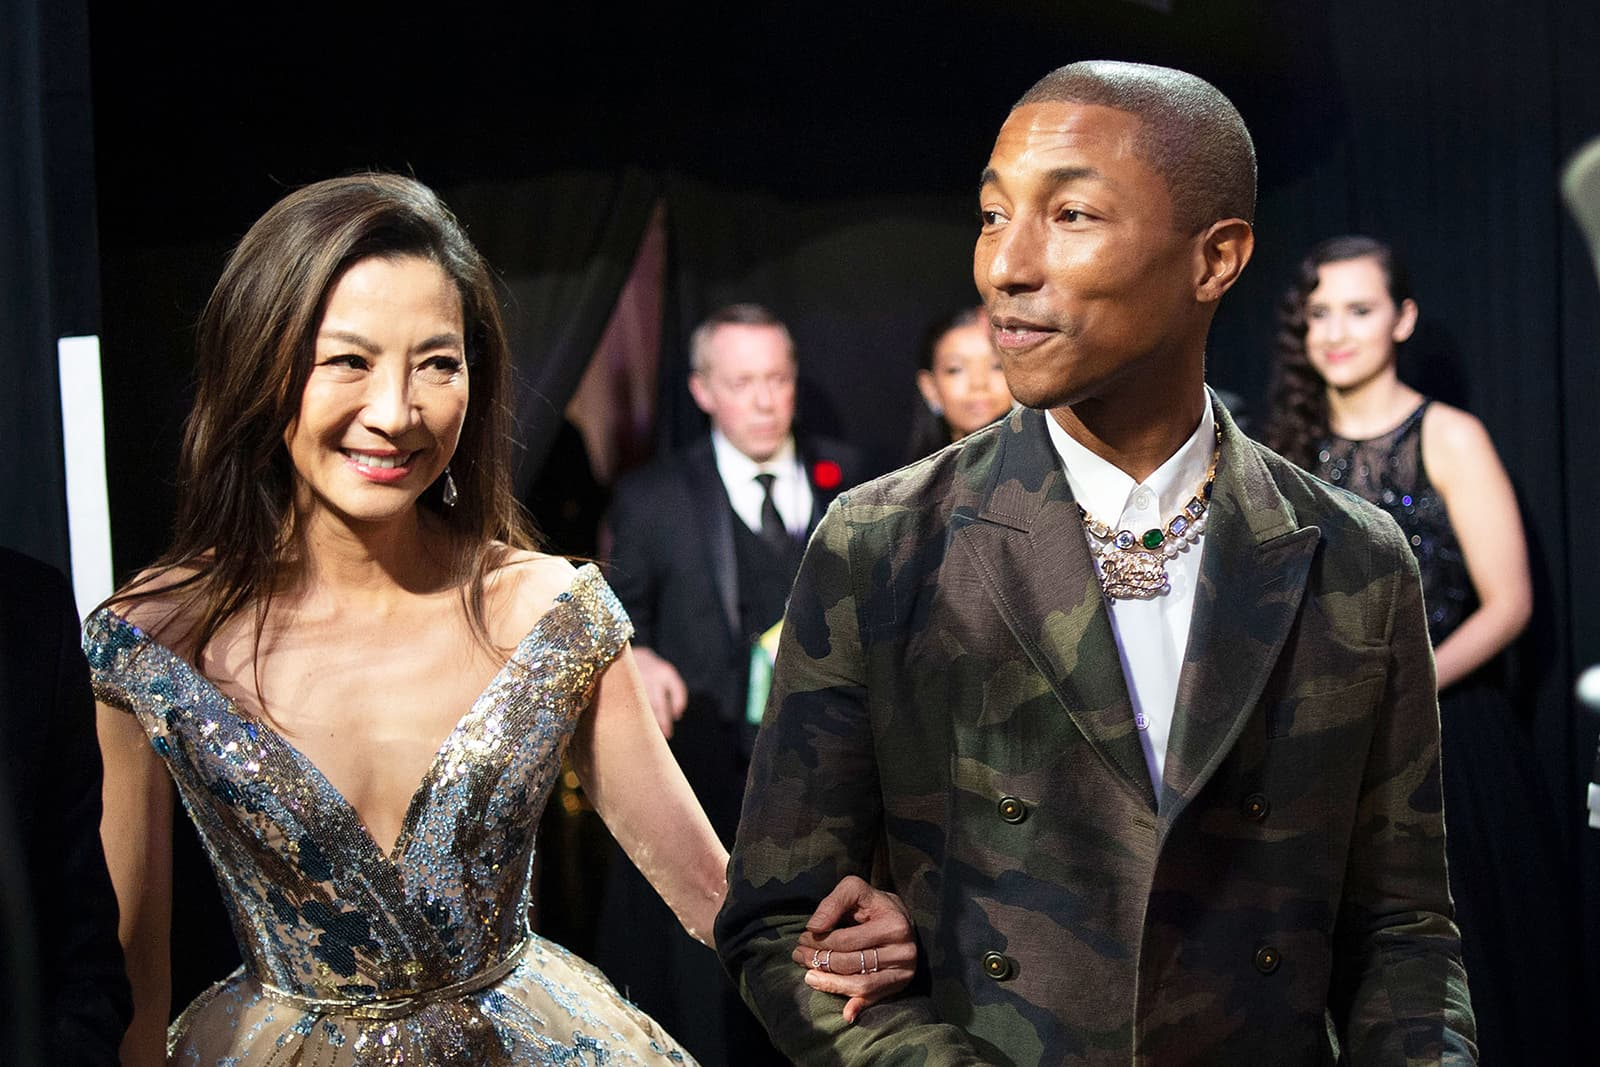 Pharrell Williams wearing Jacob & Co. necklace with diamonds, emeralds and sapphires in yellow gold, and bespoke Chanel necklace with pearls and diamonds in white gold